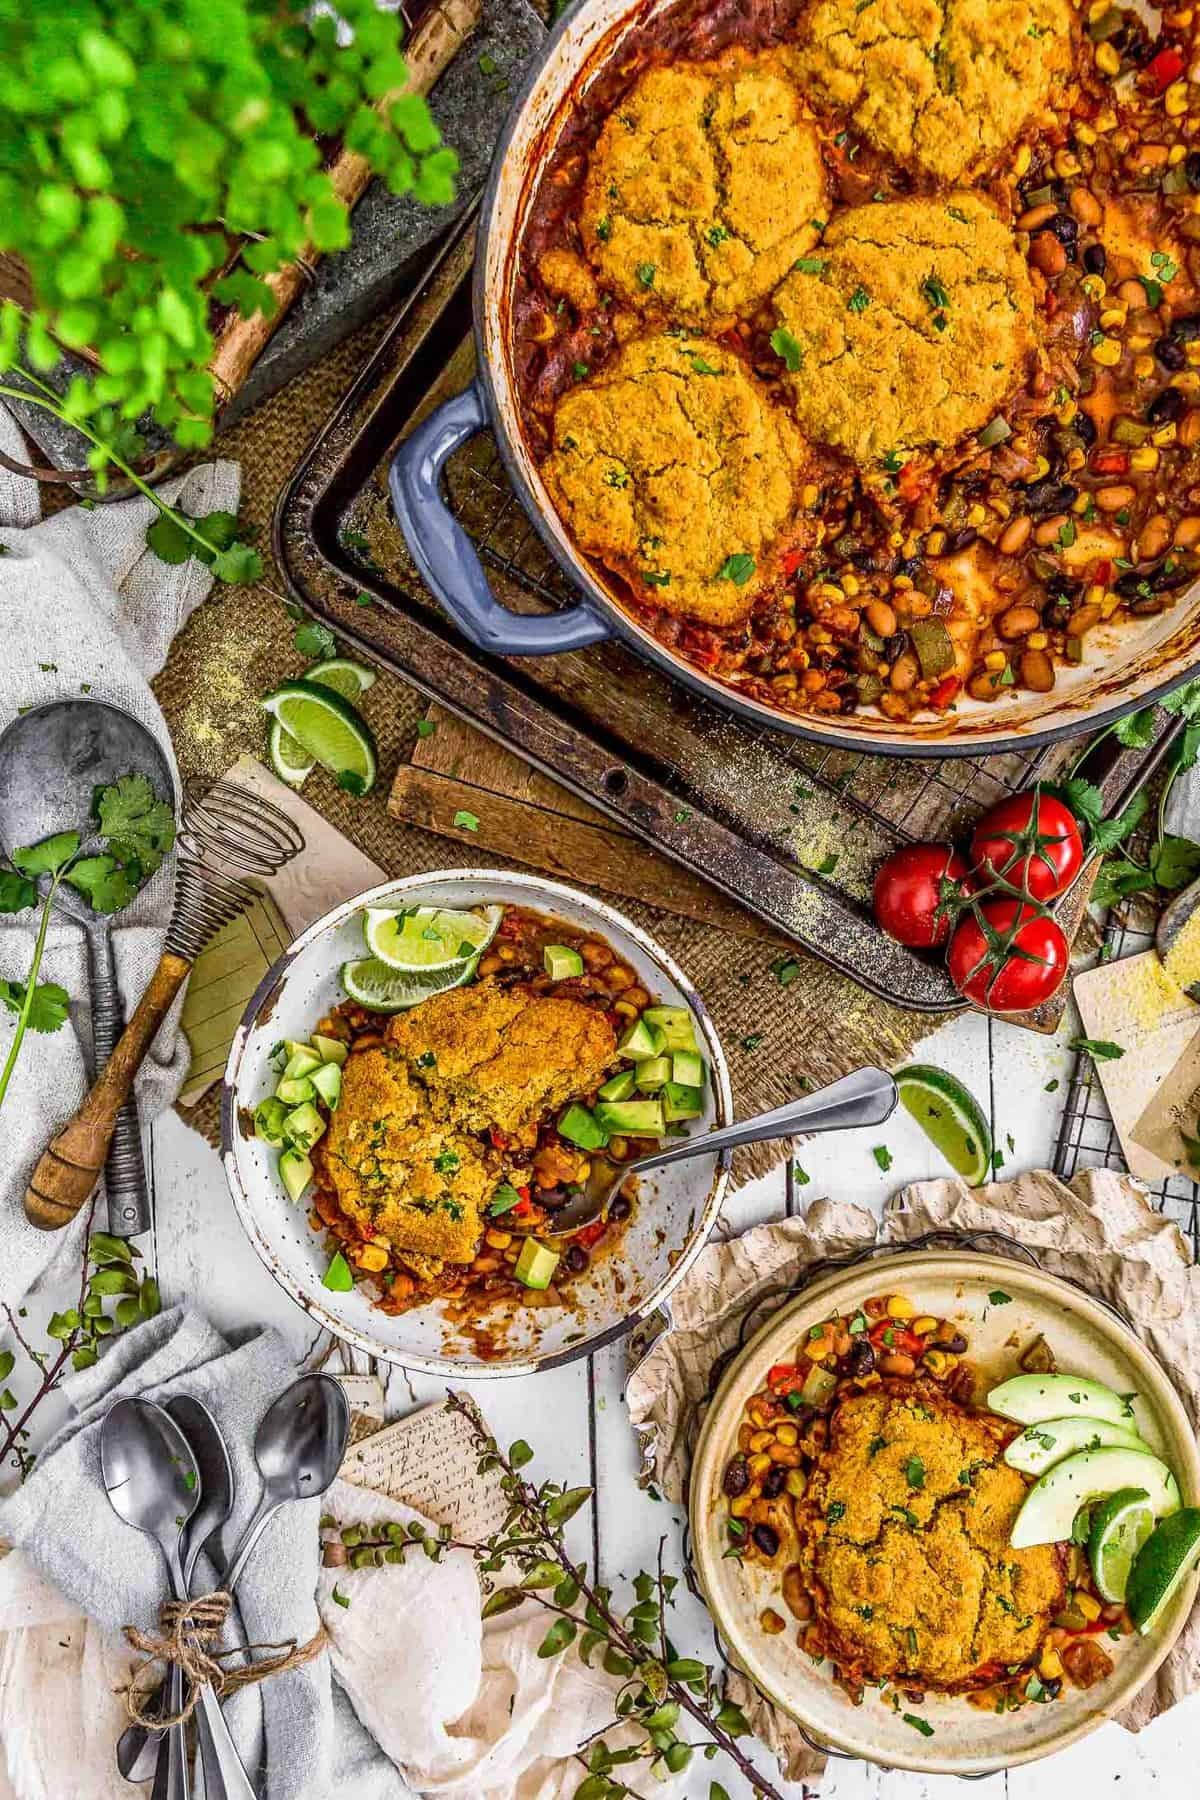 Tablescape of Vegan Tamale Skillet with plated dishes